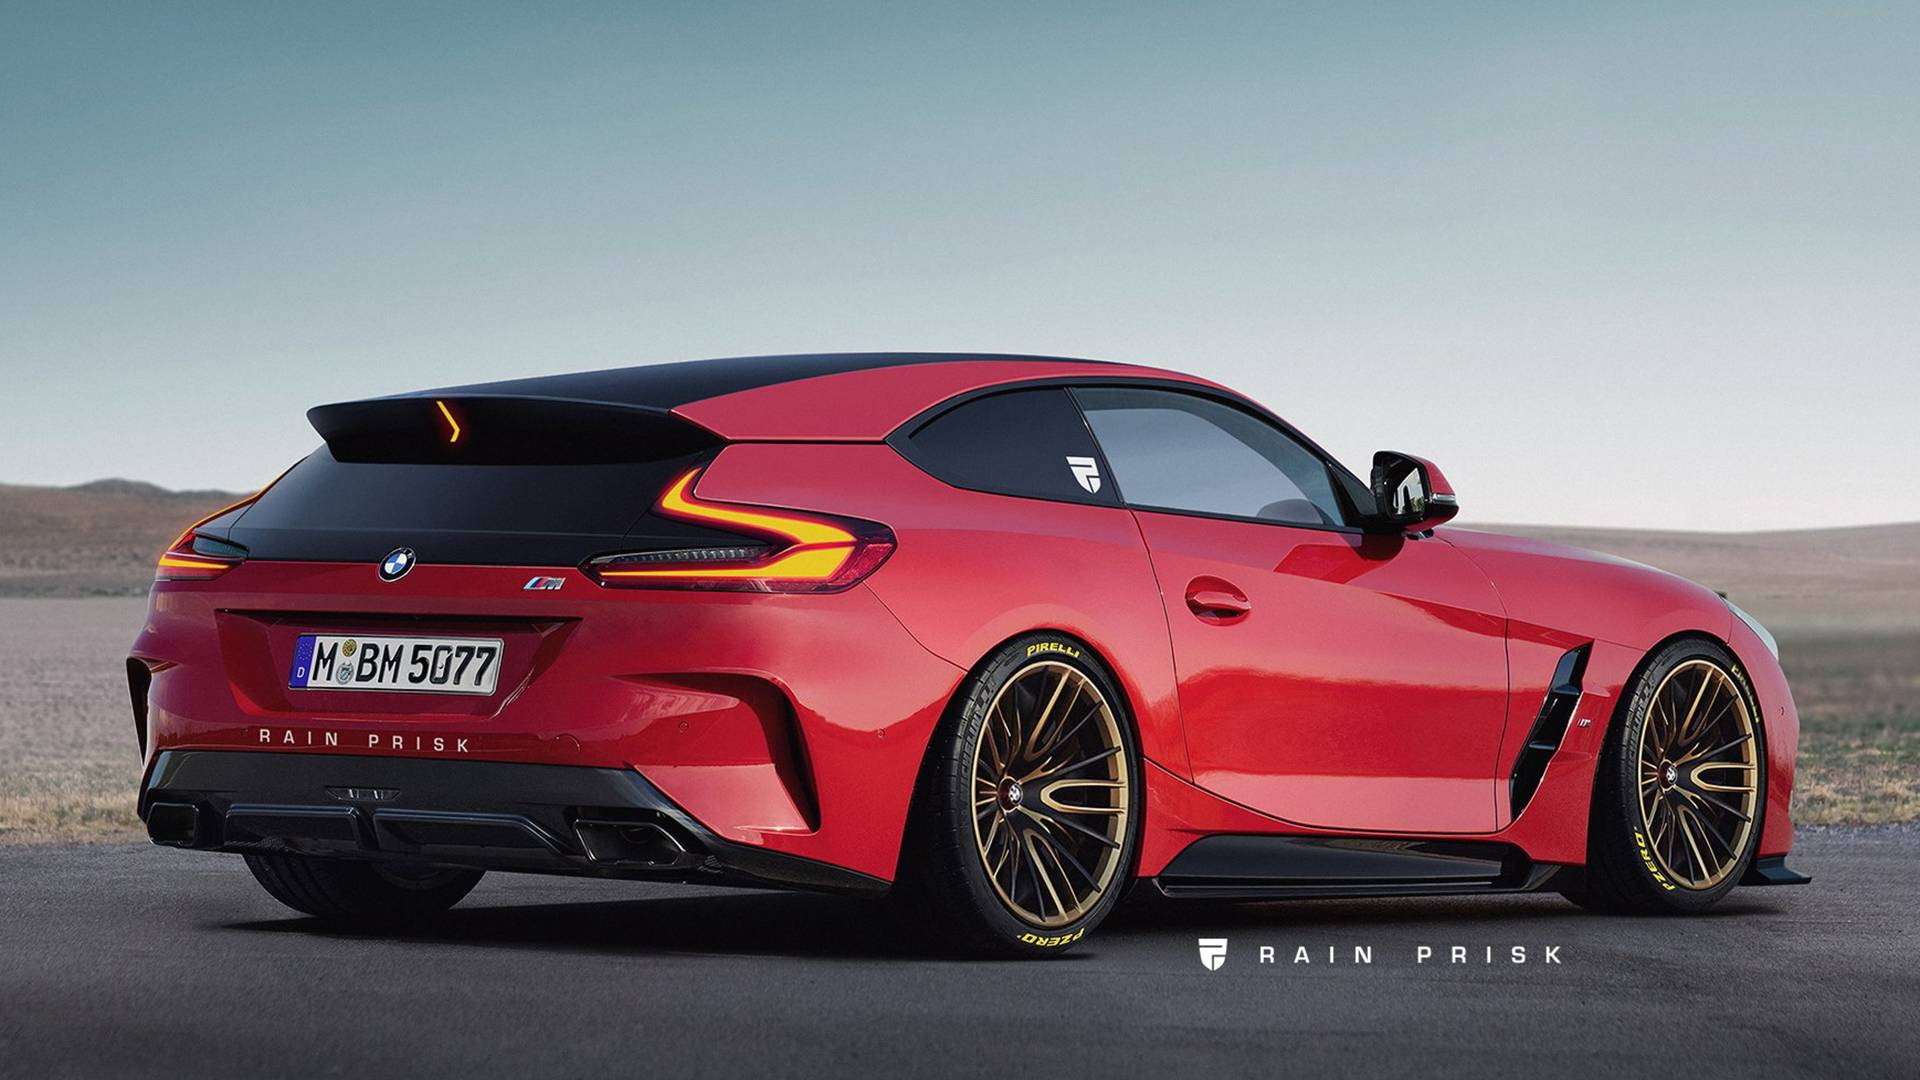 2019 Bmw Z4 Morphs Into Epic M Coupe In Wild Rendering